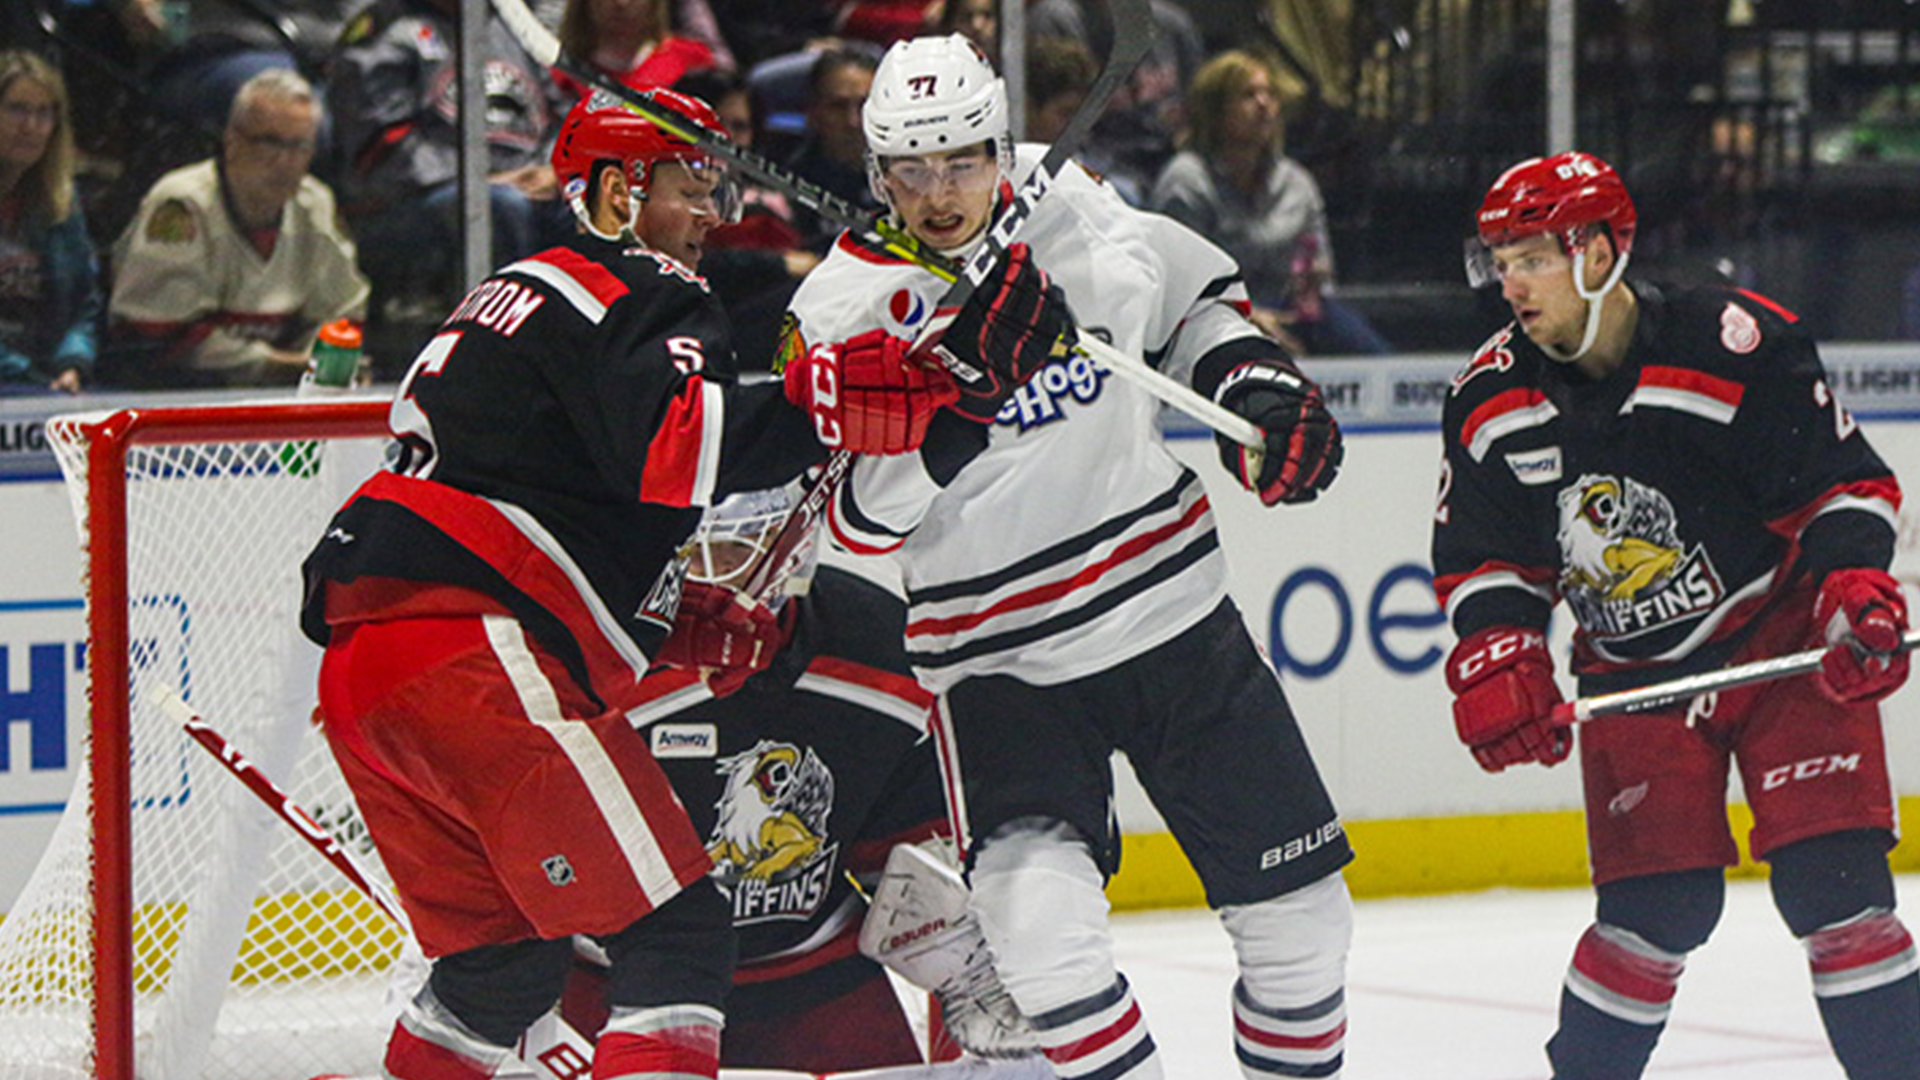 Blackhawks player Kirby Dach is 'getting his feet wet' in the AHL